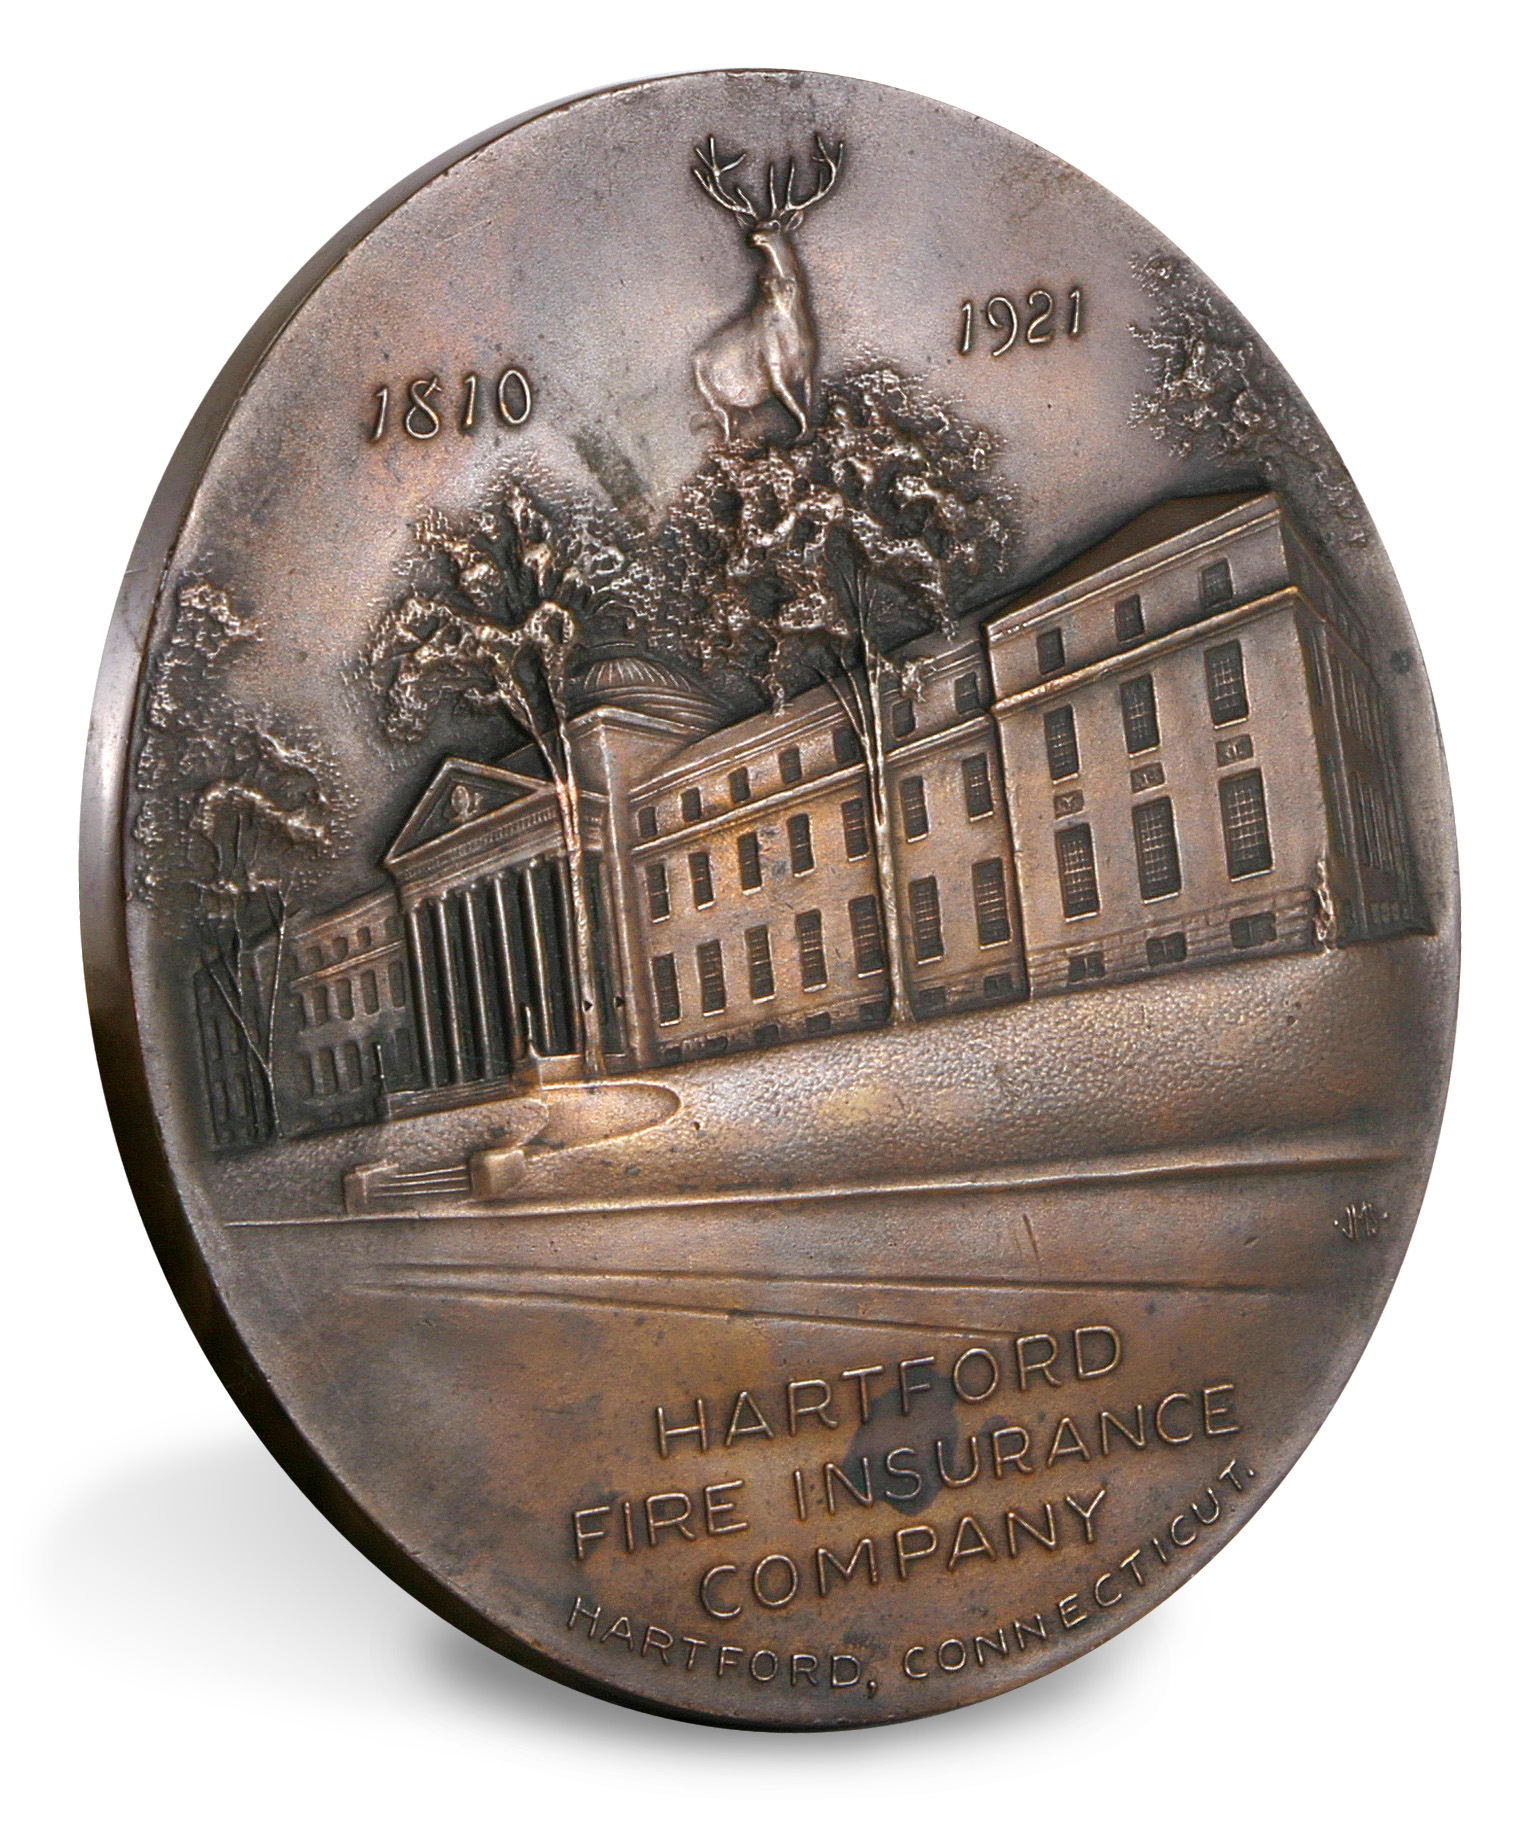 HARTFORD FIRE INSURANCE COMPANY PAPERWEIGHT